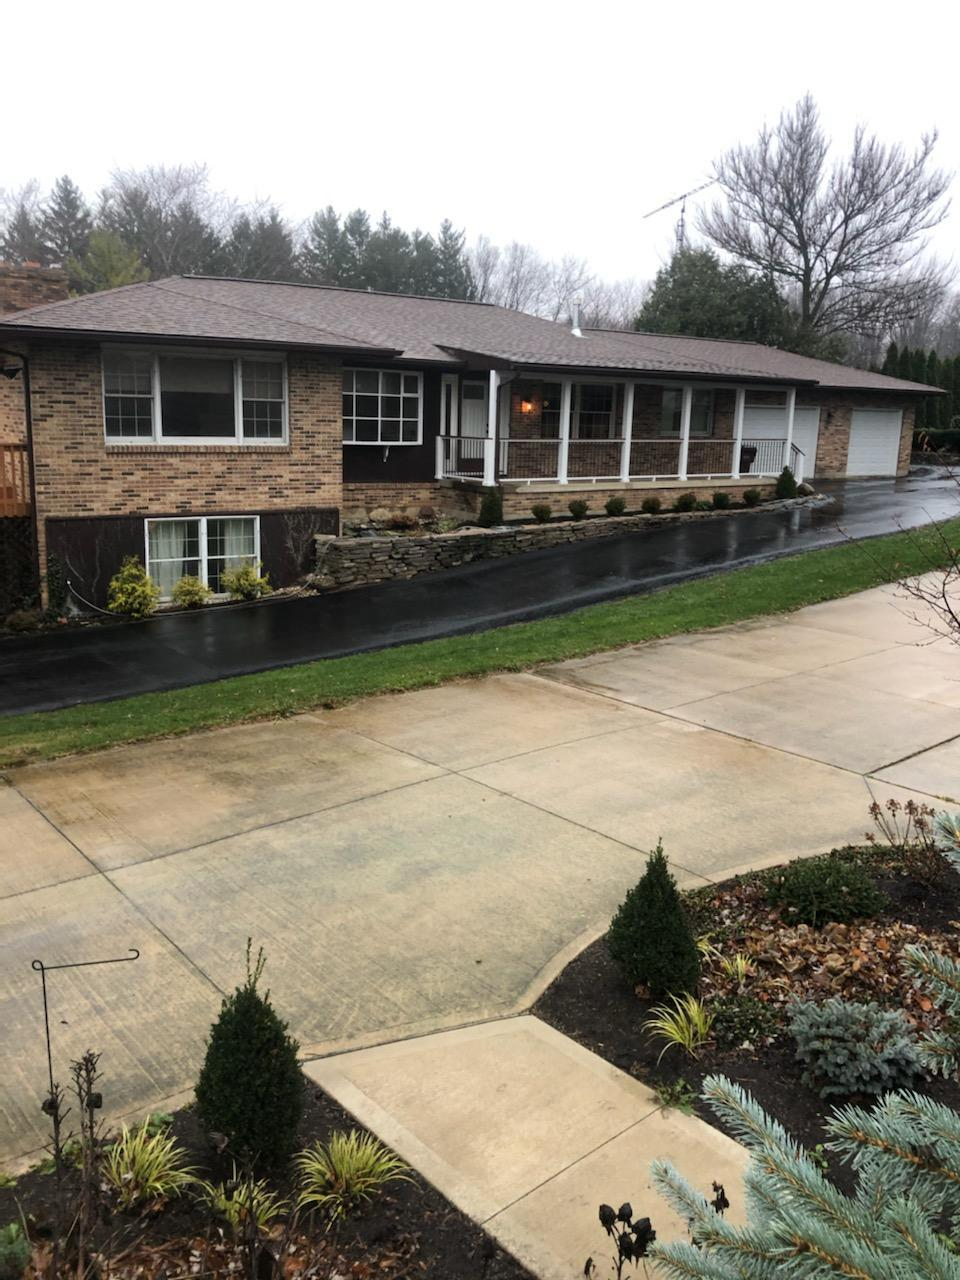 1640 Choctaw Drive, London, Ohio 43140, 3 Bedrooms Bedrooms, ,2 BathroomsBathrooms,Residential,For Sale,Choctaw,220041151